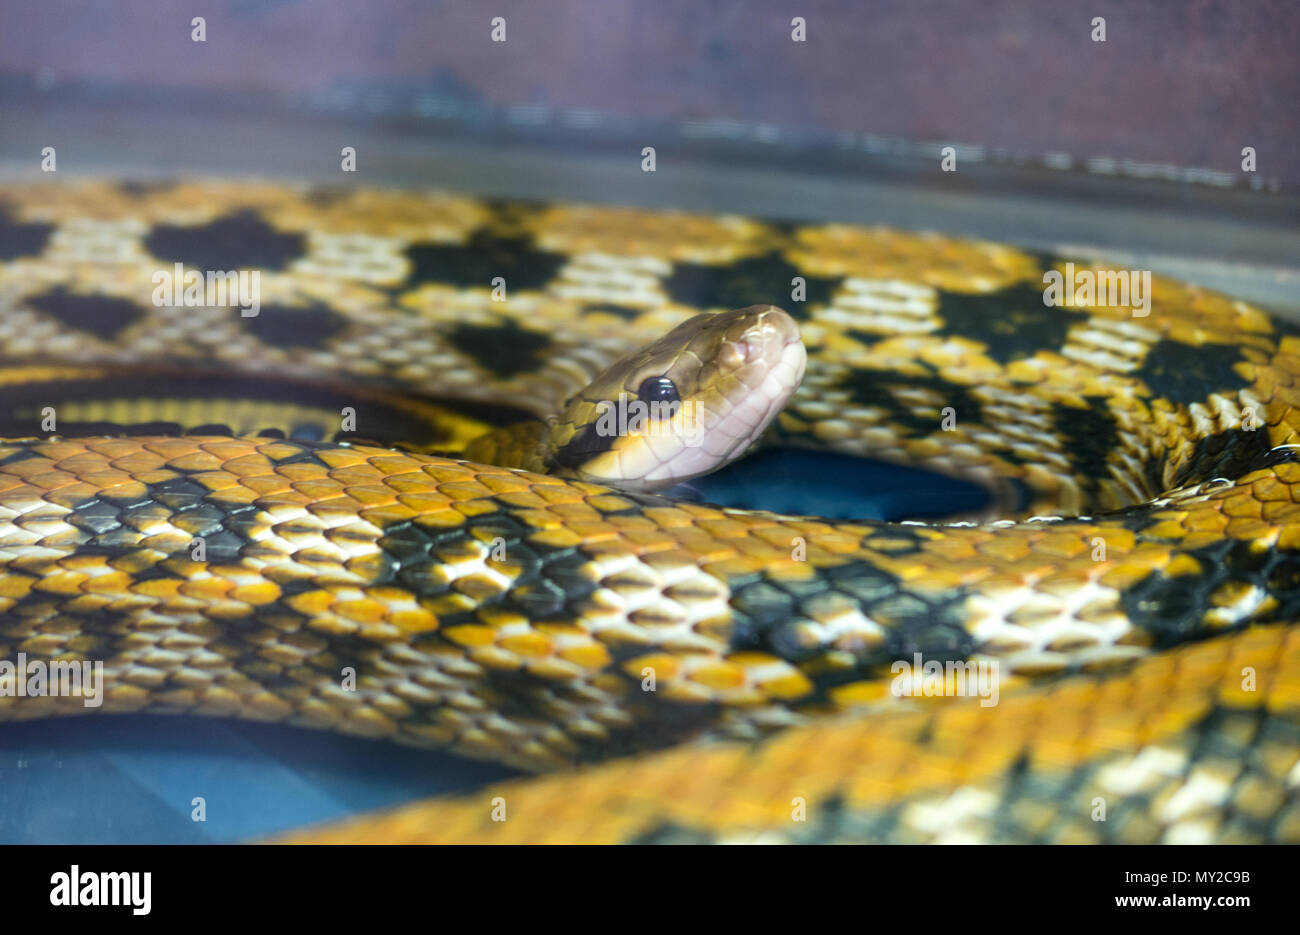 Young Yellow Python Resting In The Terrarium With Water Stock Photo